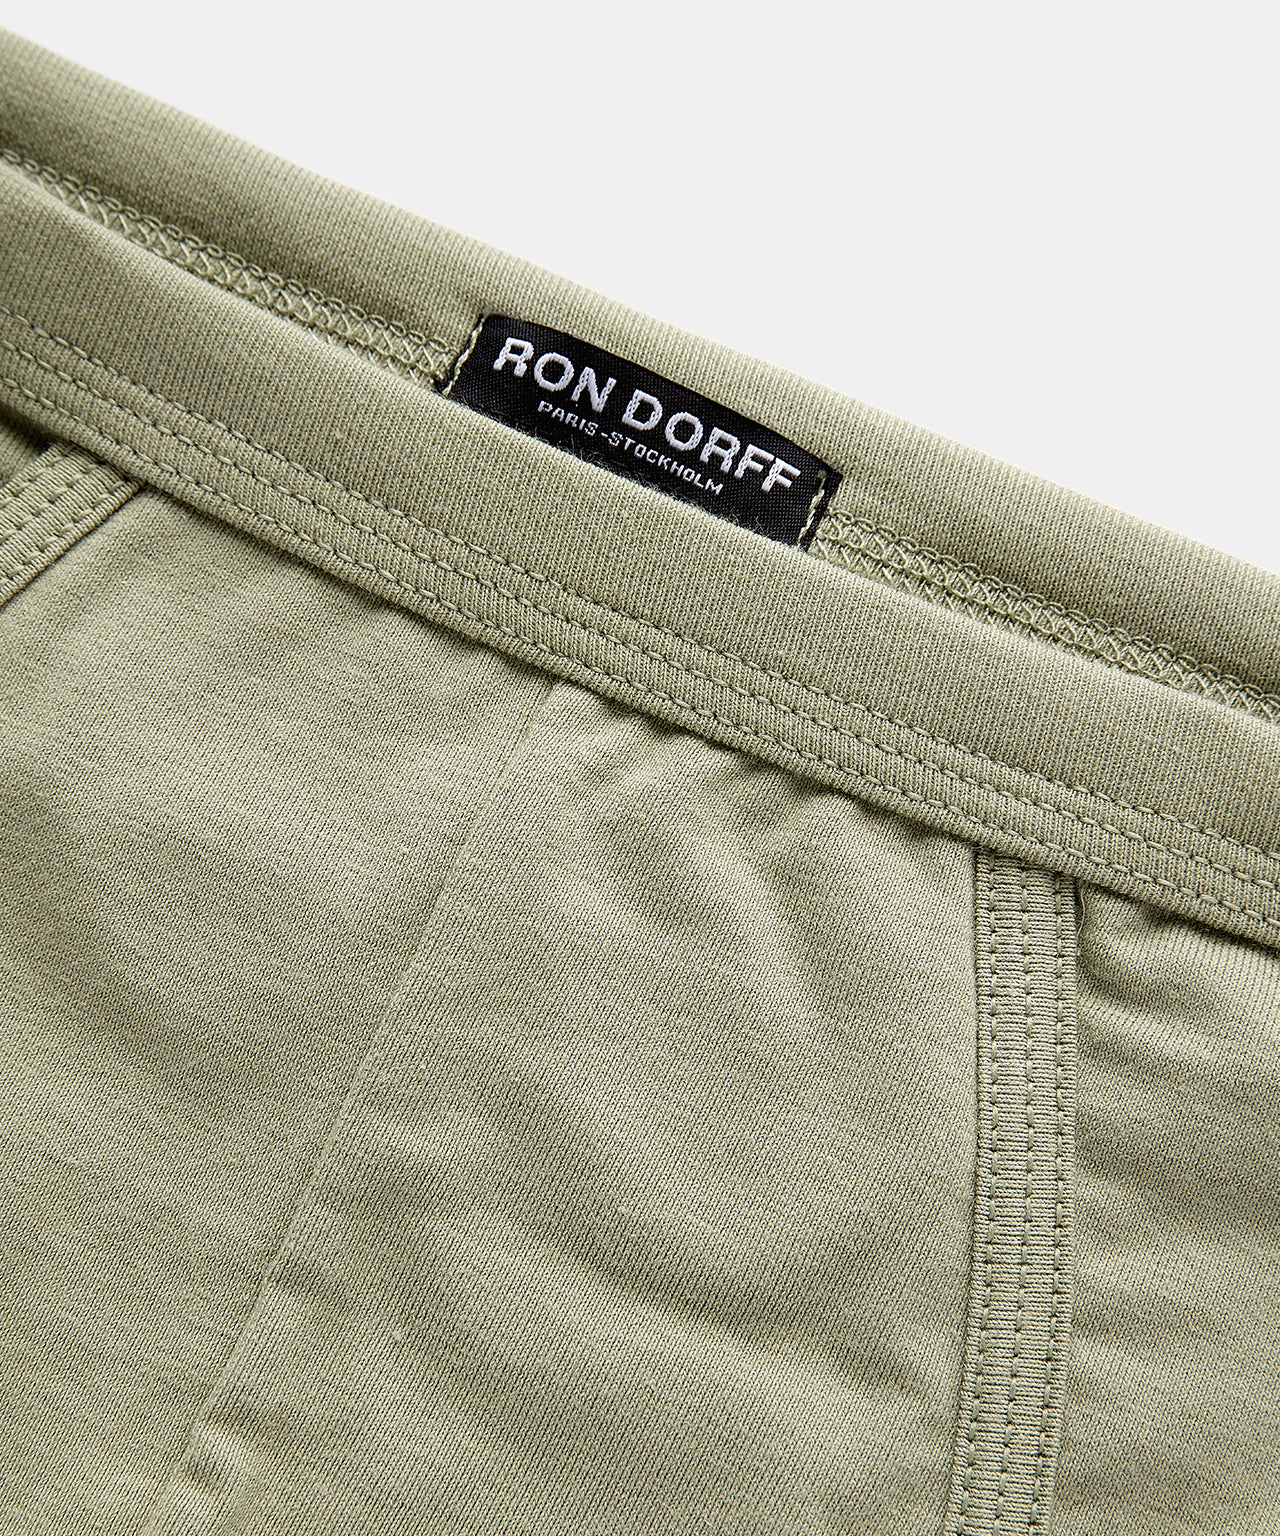 747 Boxer Briefs Kit - khaki